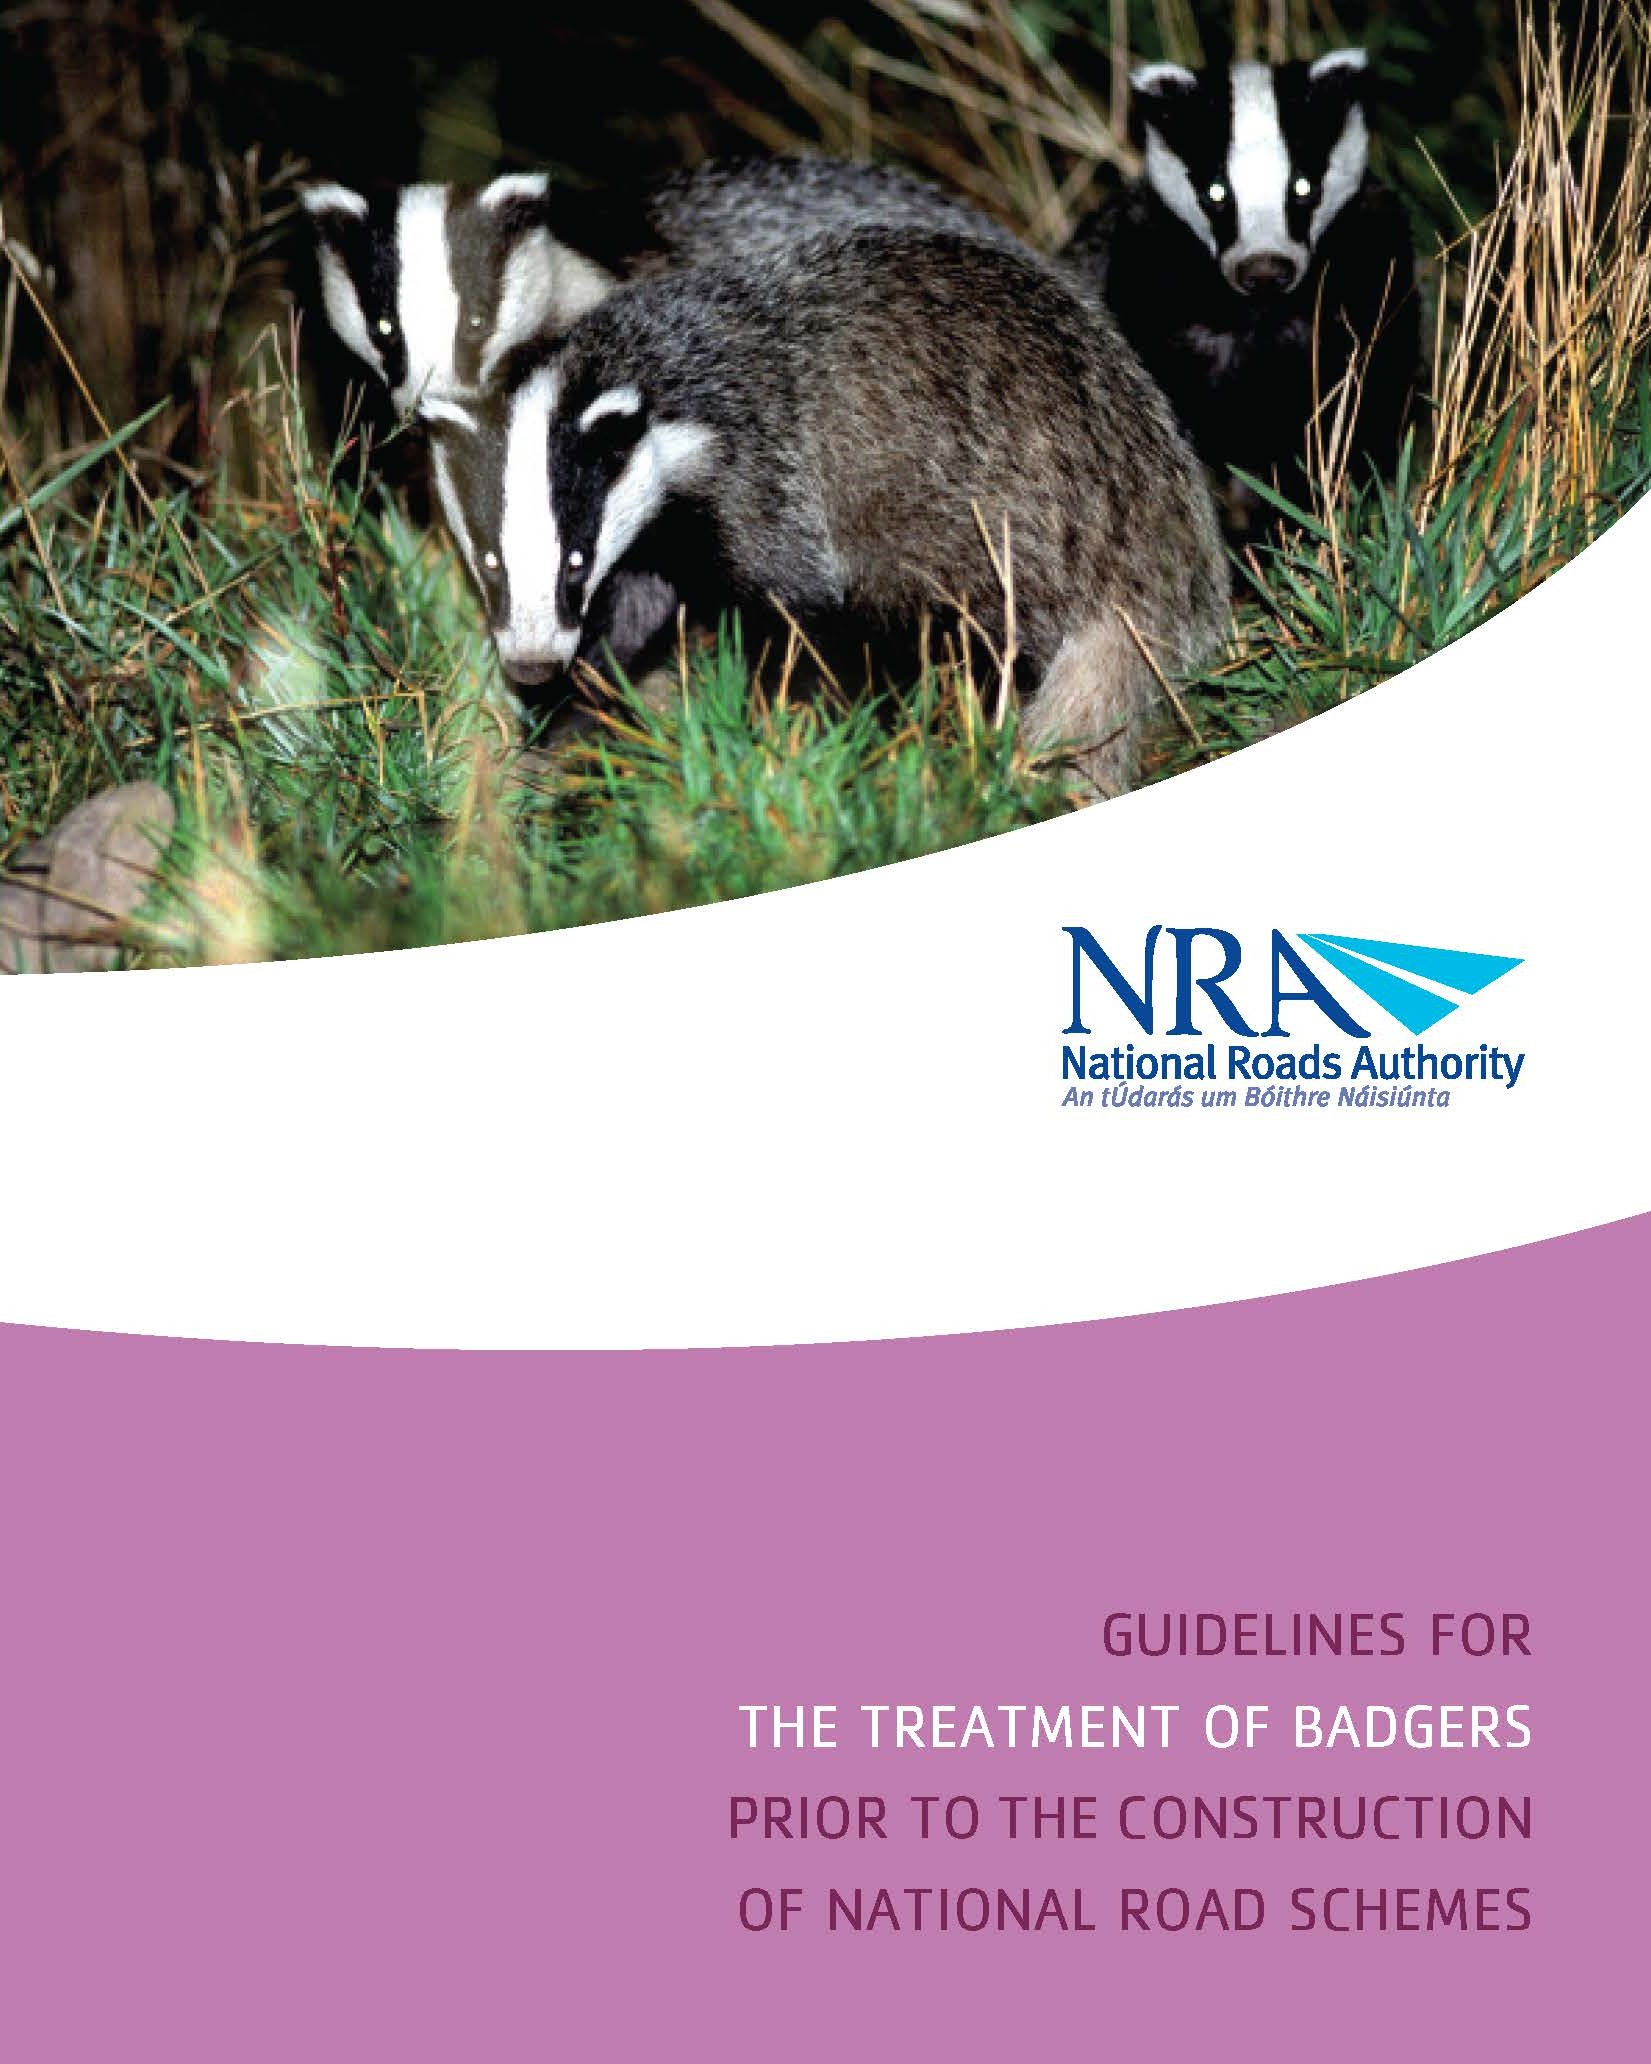 Guidelines for the Treatment of Badgers Prior to the Construction of National Road Schemes. National Roads Authority (NRA)